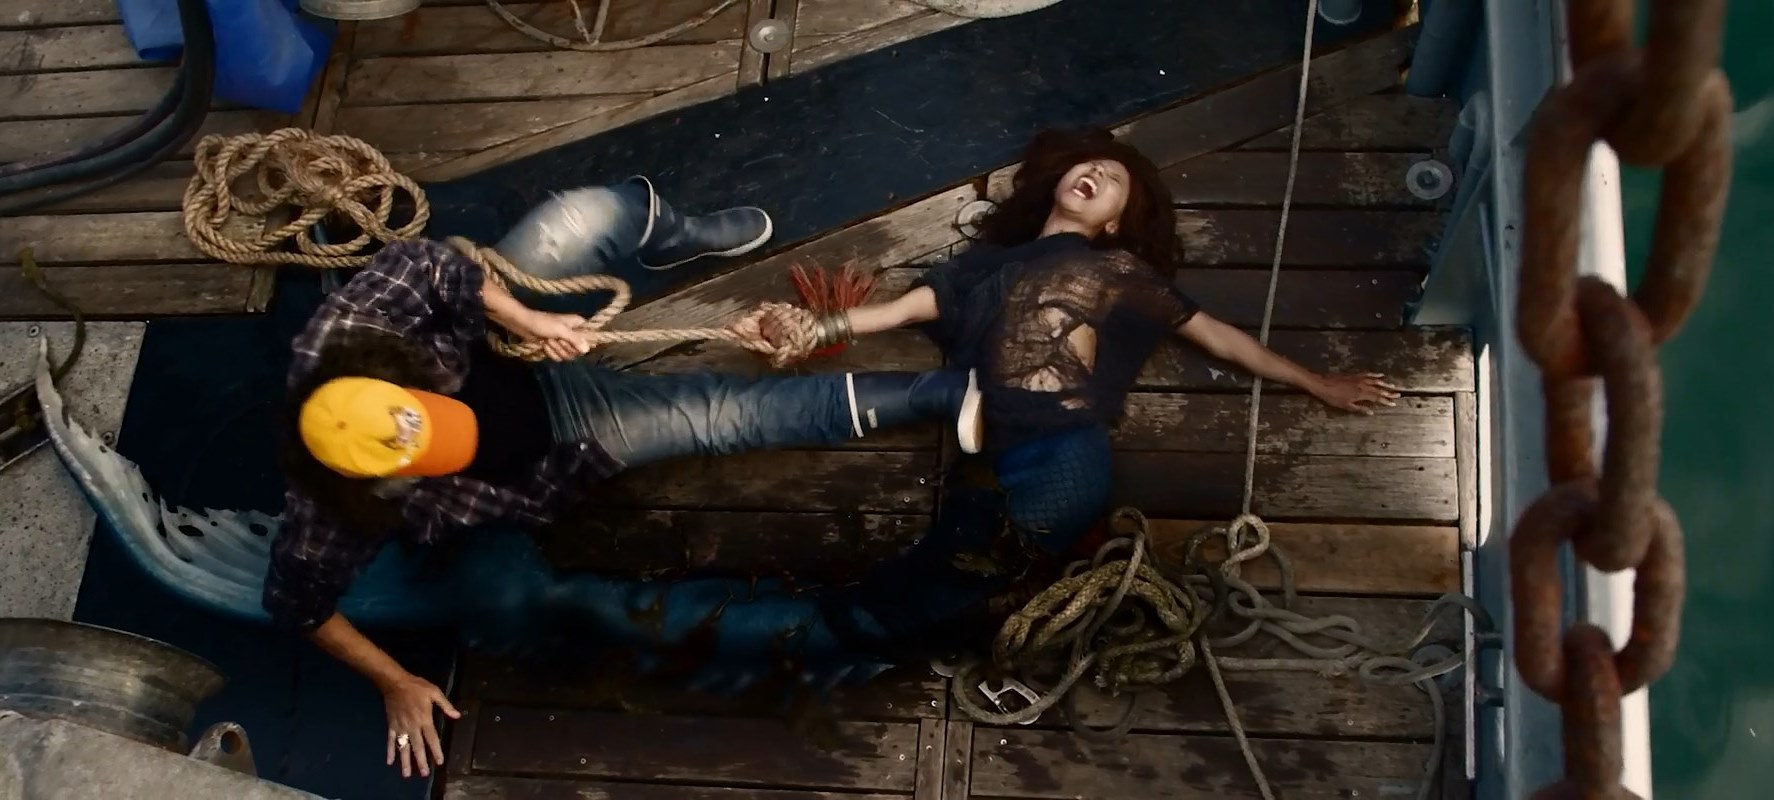 The Mermaid (Alexandra Bokova) captured on the fishing vessel in Mermaid Down (2019)